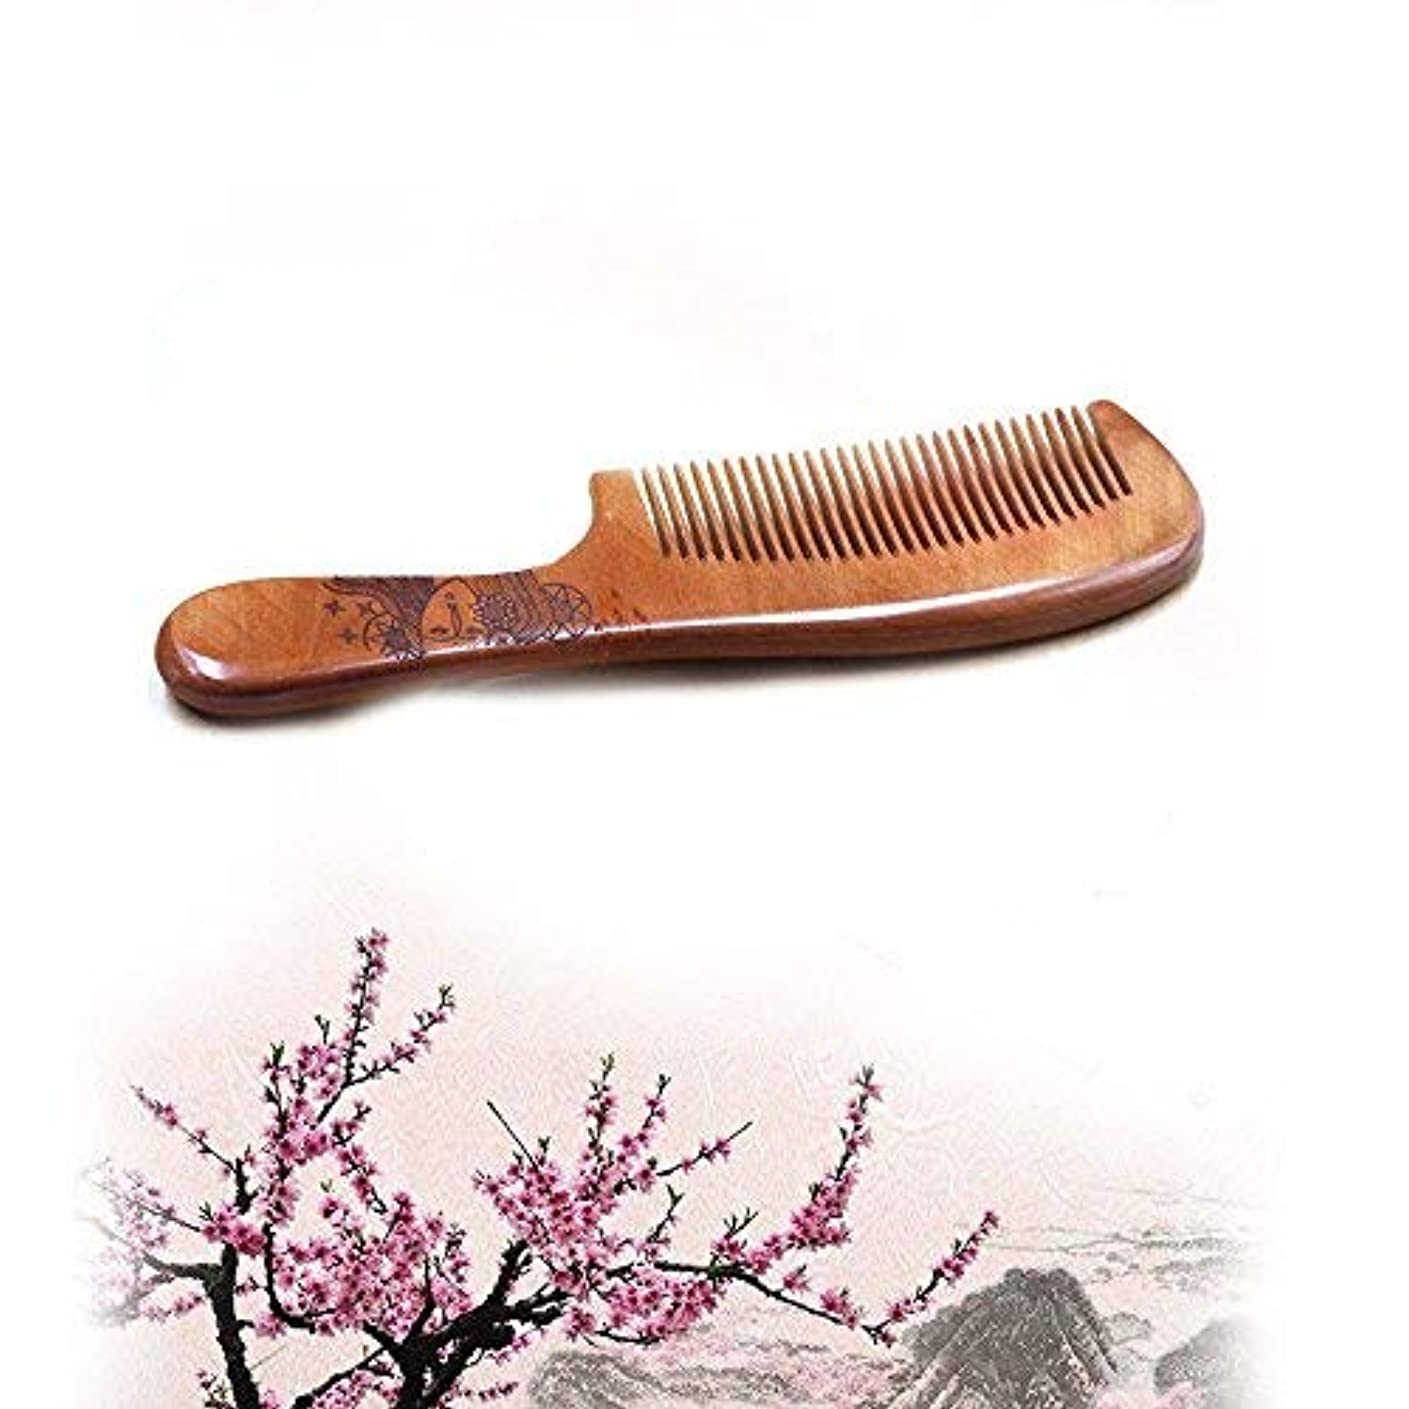 豆腐ブリッジ類推Universal Natural Hair Comb,Victory Detangling Wooden Combs No Static Peach Wood for Men,Women and Kids (long)...